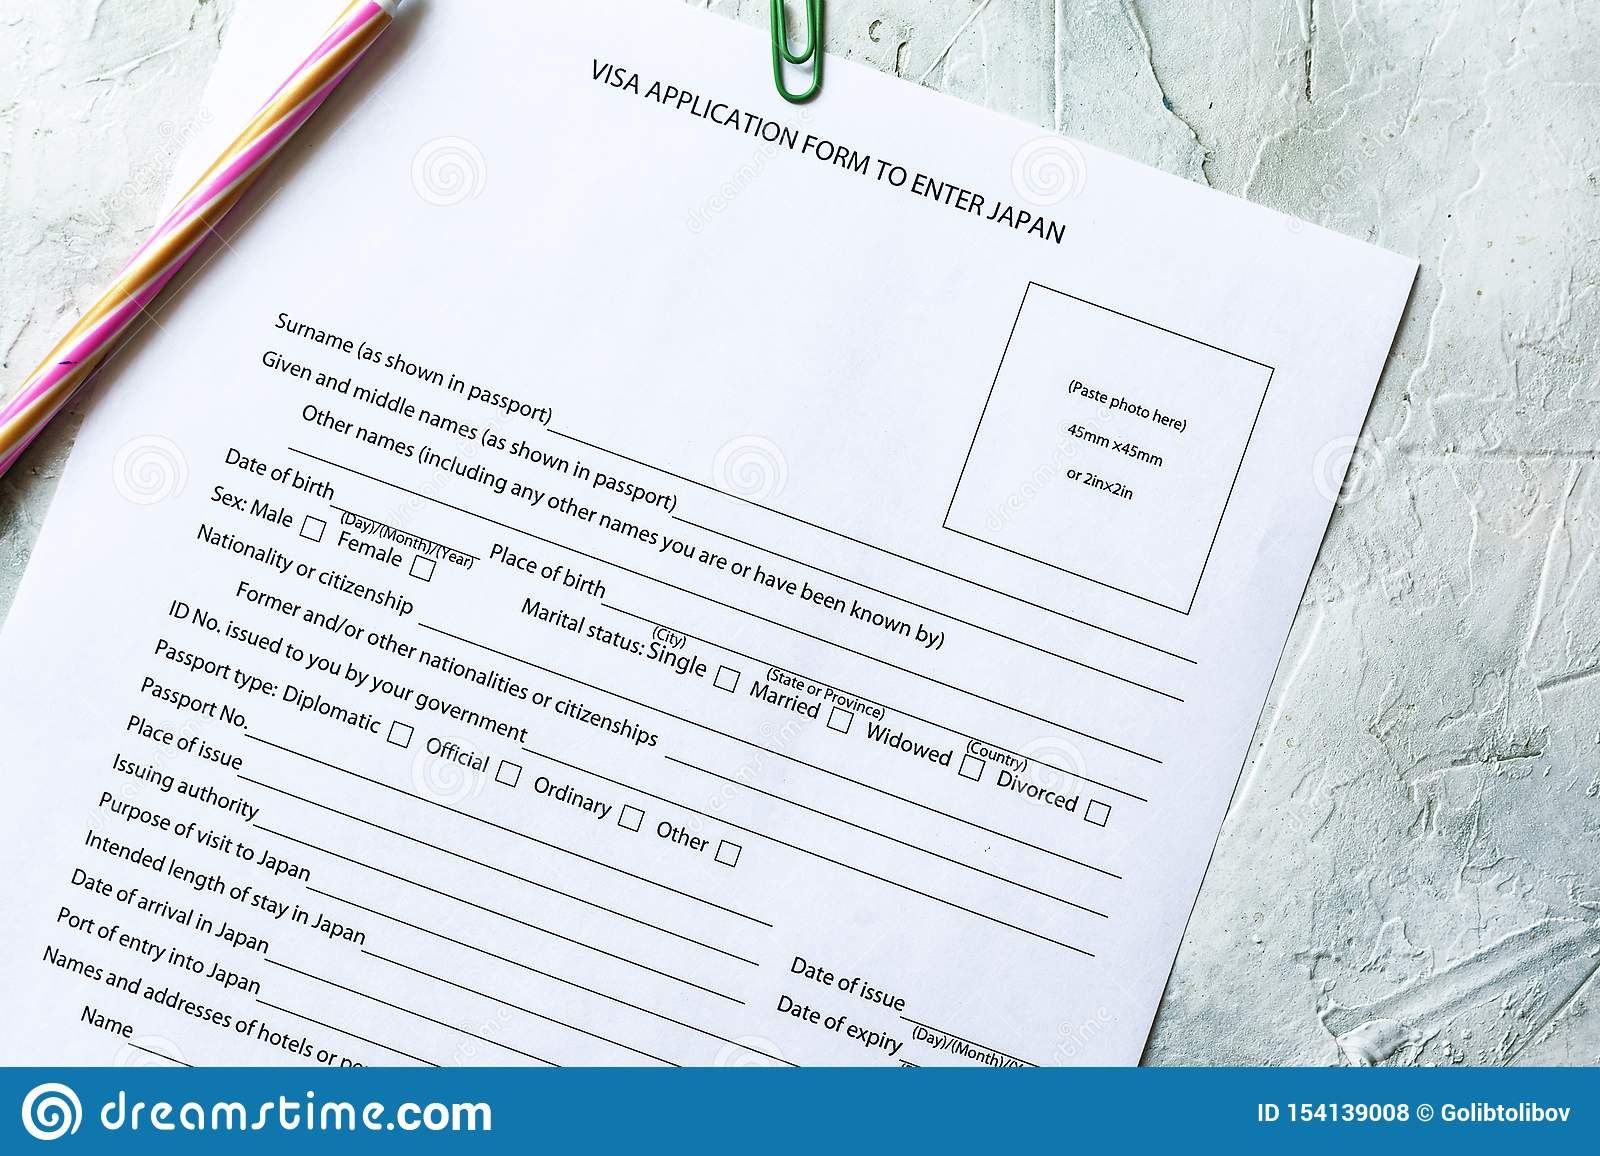 Japan Visa Application Form Stock Photo Image Of Official Background 154139008